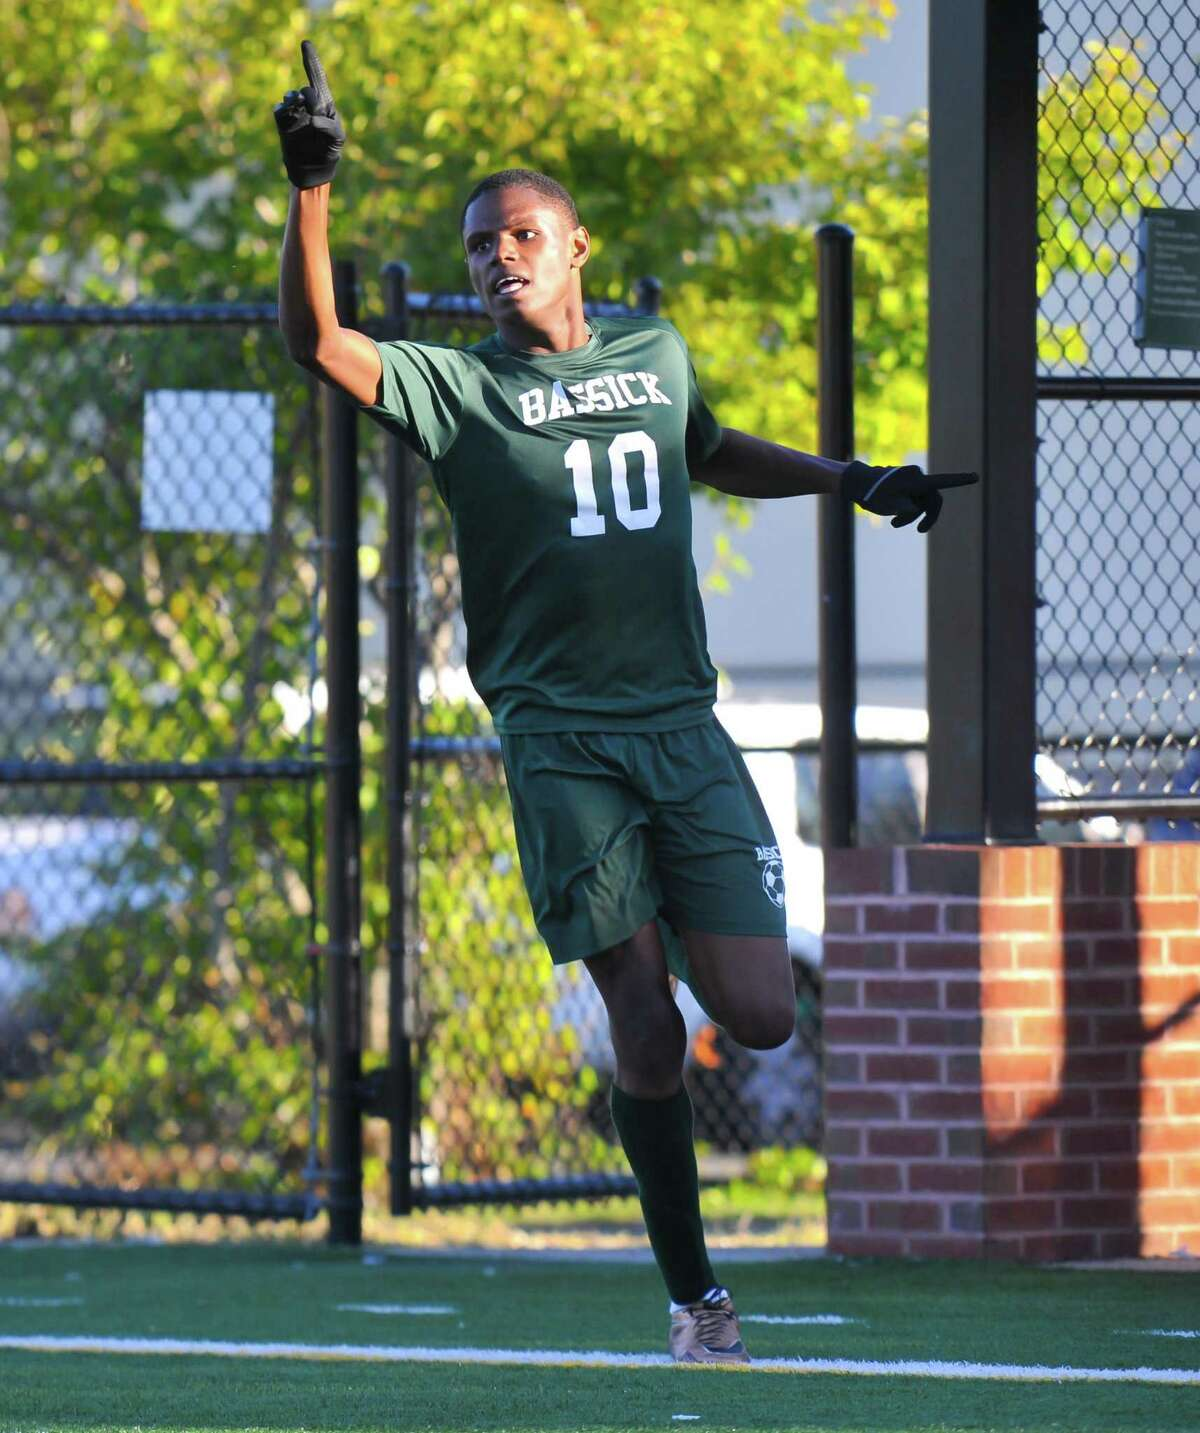 Joel Richards (10) of the Bassick Lions celebrates a score during a game against the Harding Presidents on October 11, 2016 at Luis Munoz Marin School in Bridgeport, Connecticut.